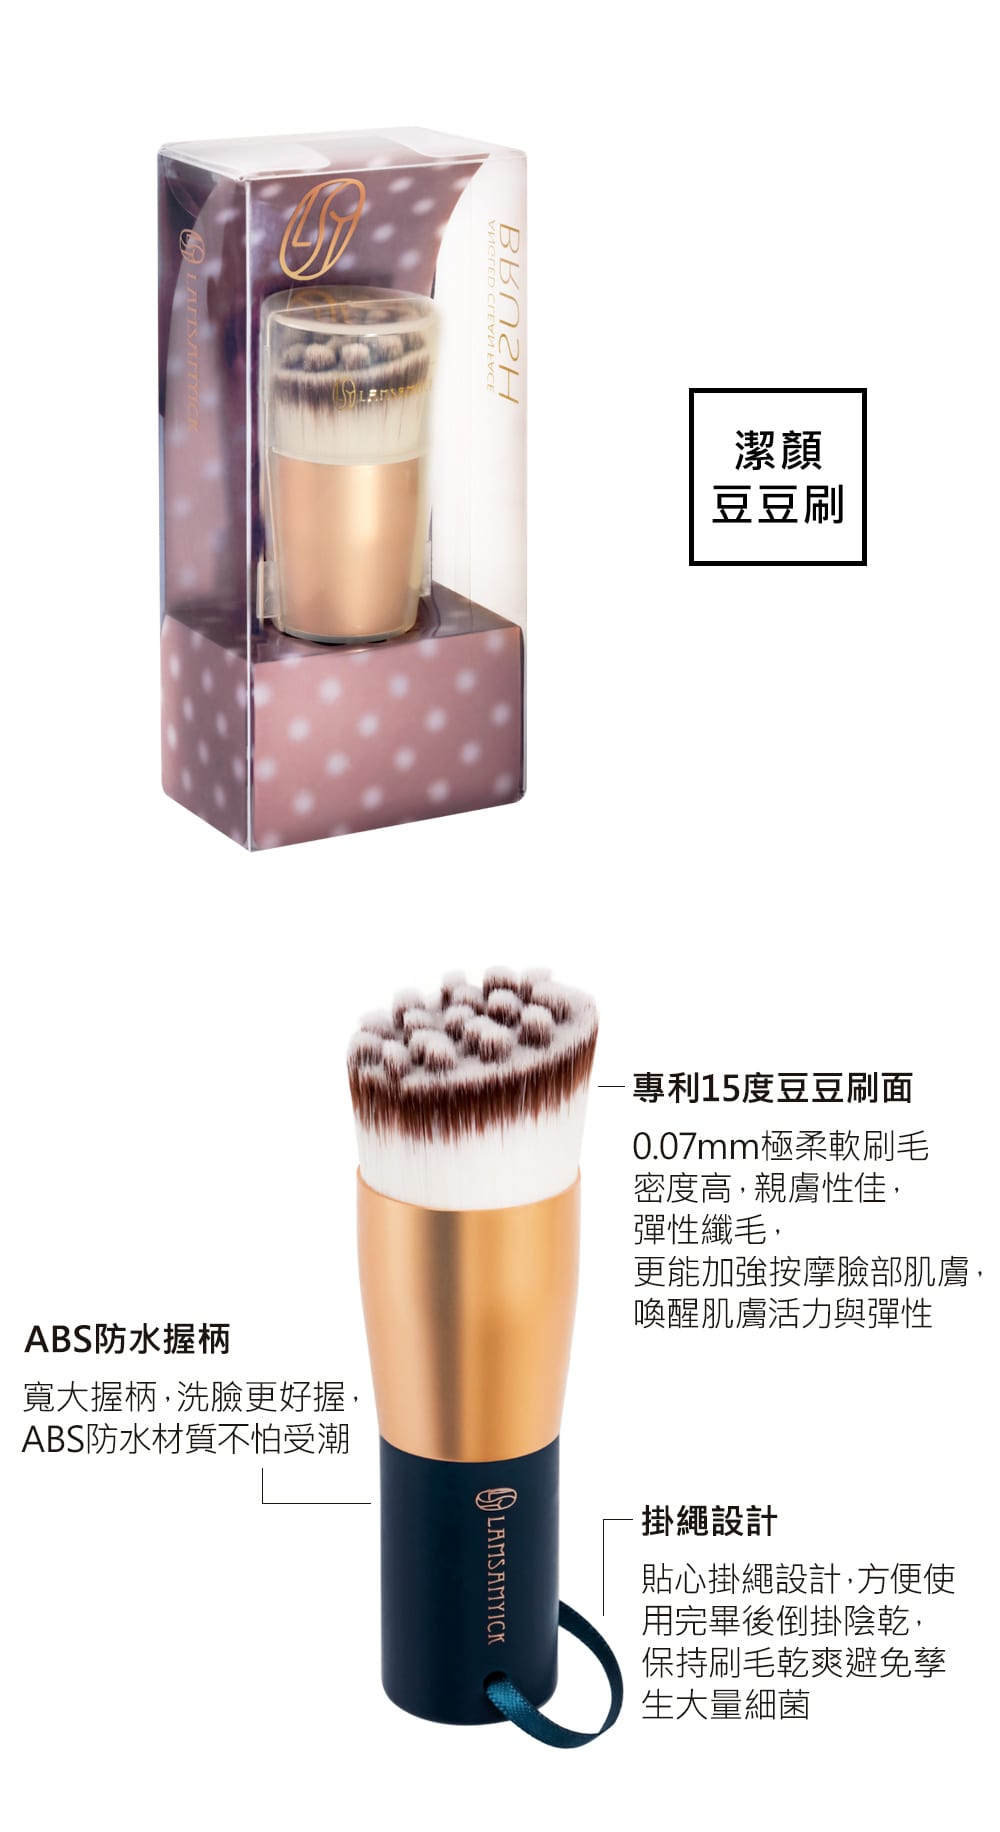 Angled Clean Face Brush - Product Packaging & Features